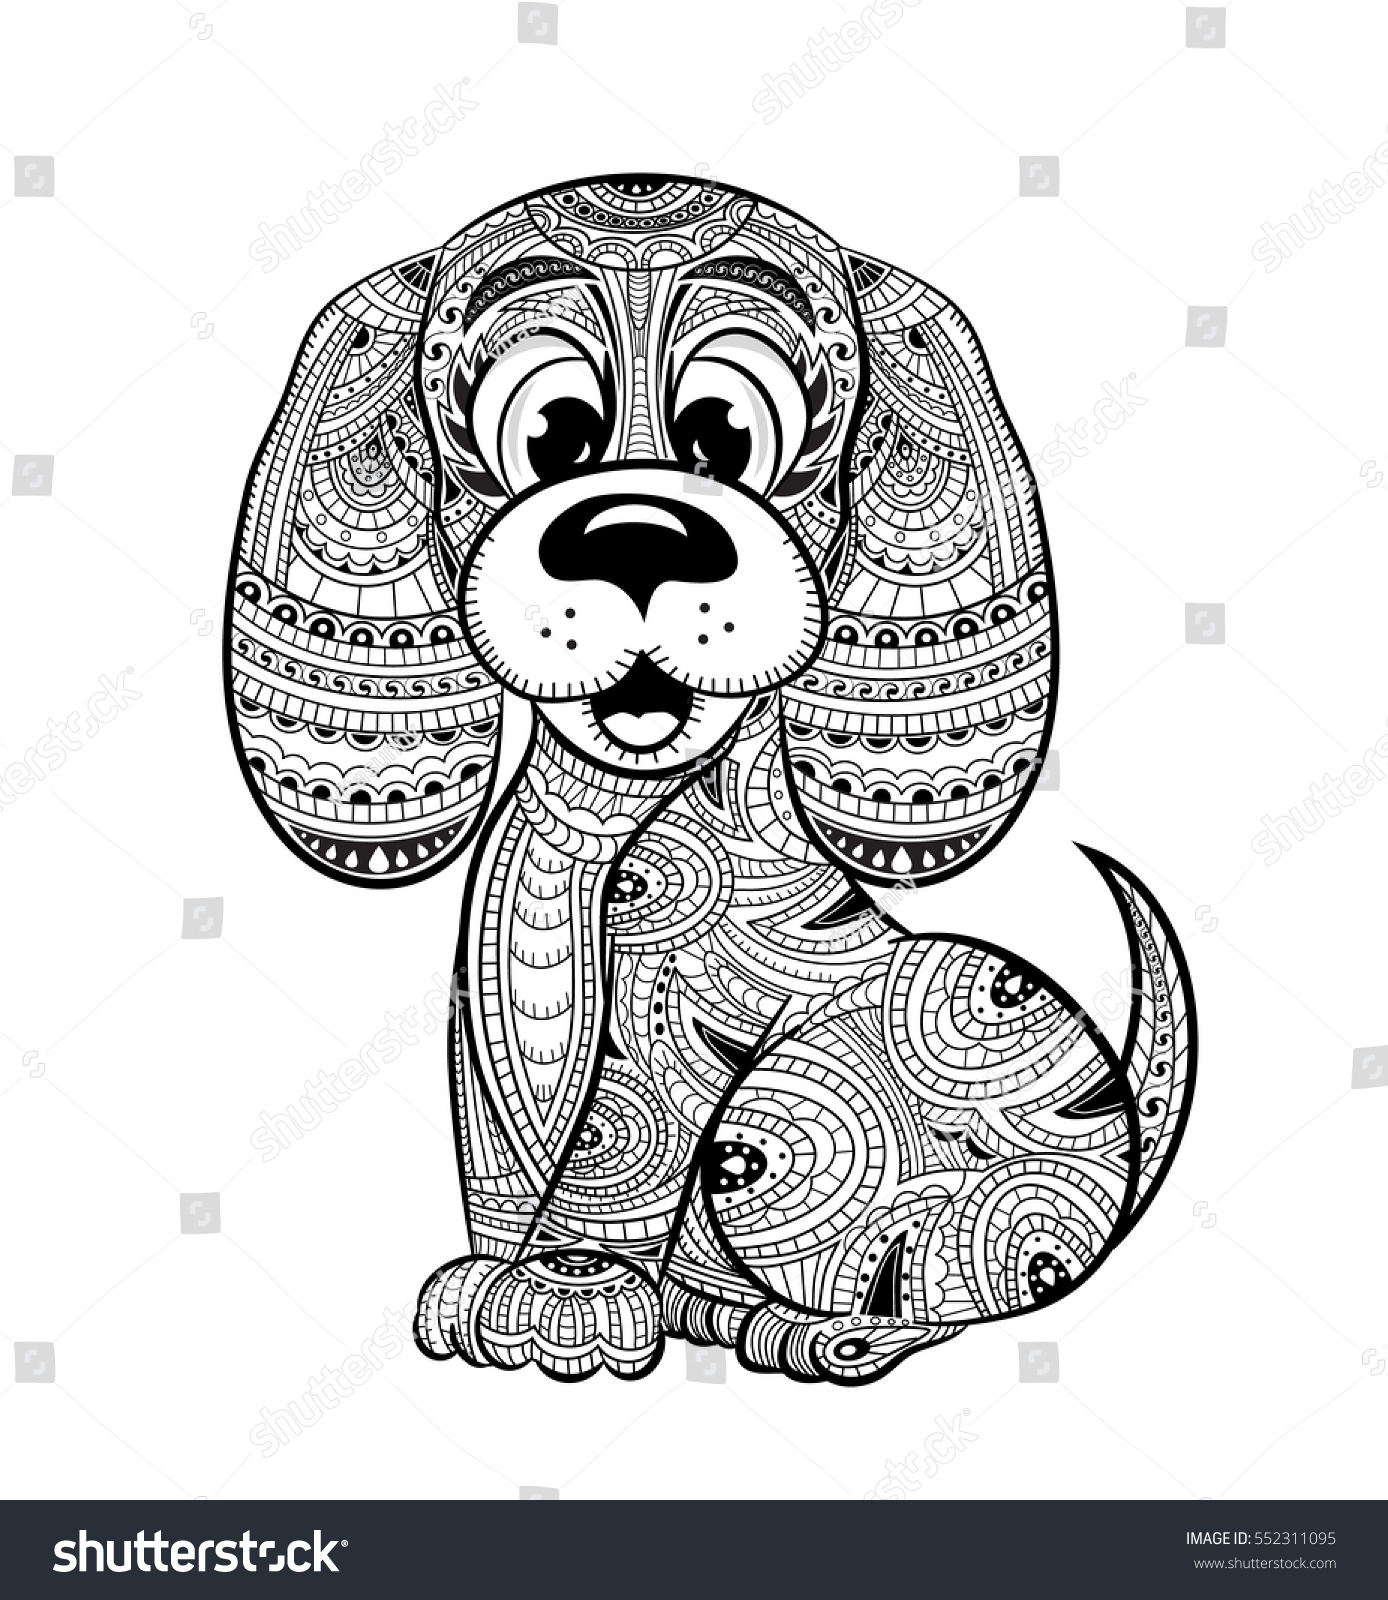 Anti stress coloring images - Dog Anti Stress Coloring Book For Adults Black And White Hand Drawn Vector